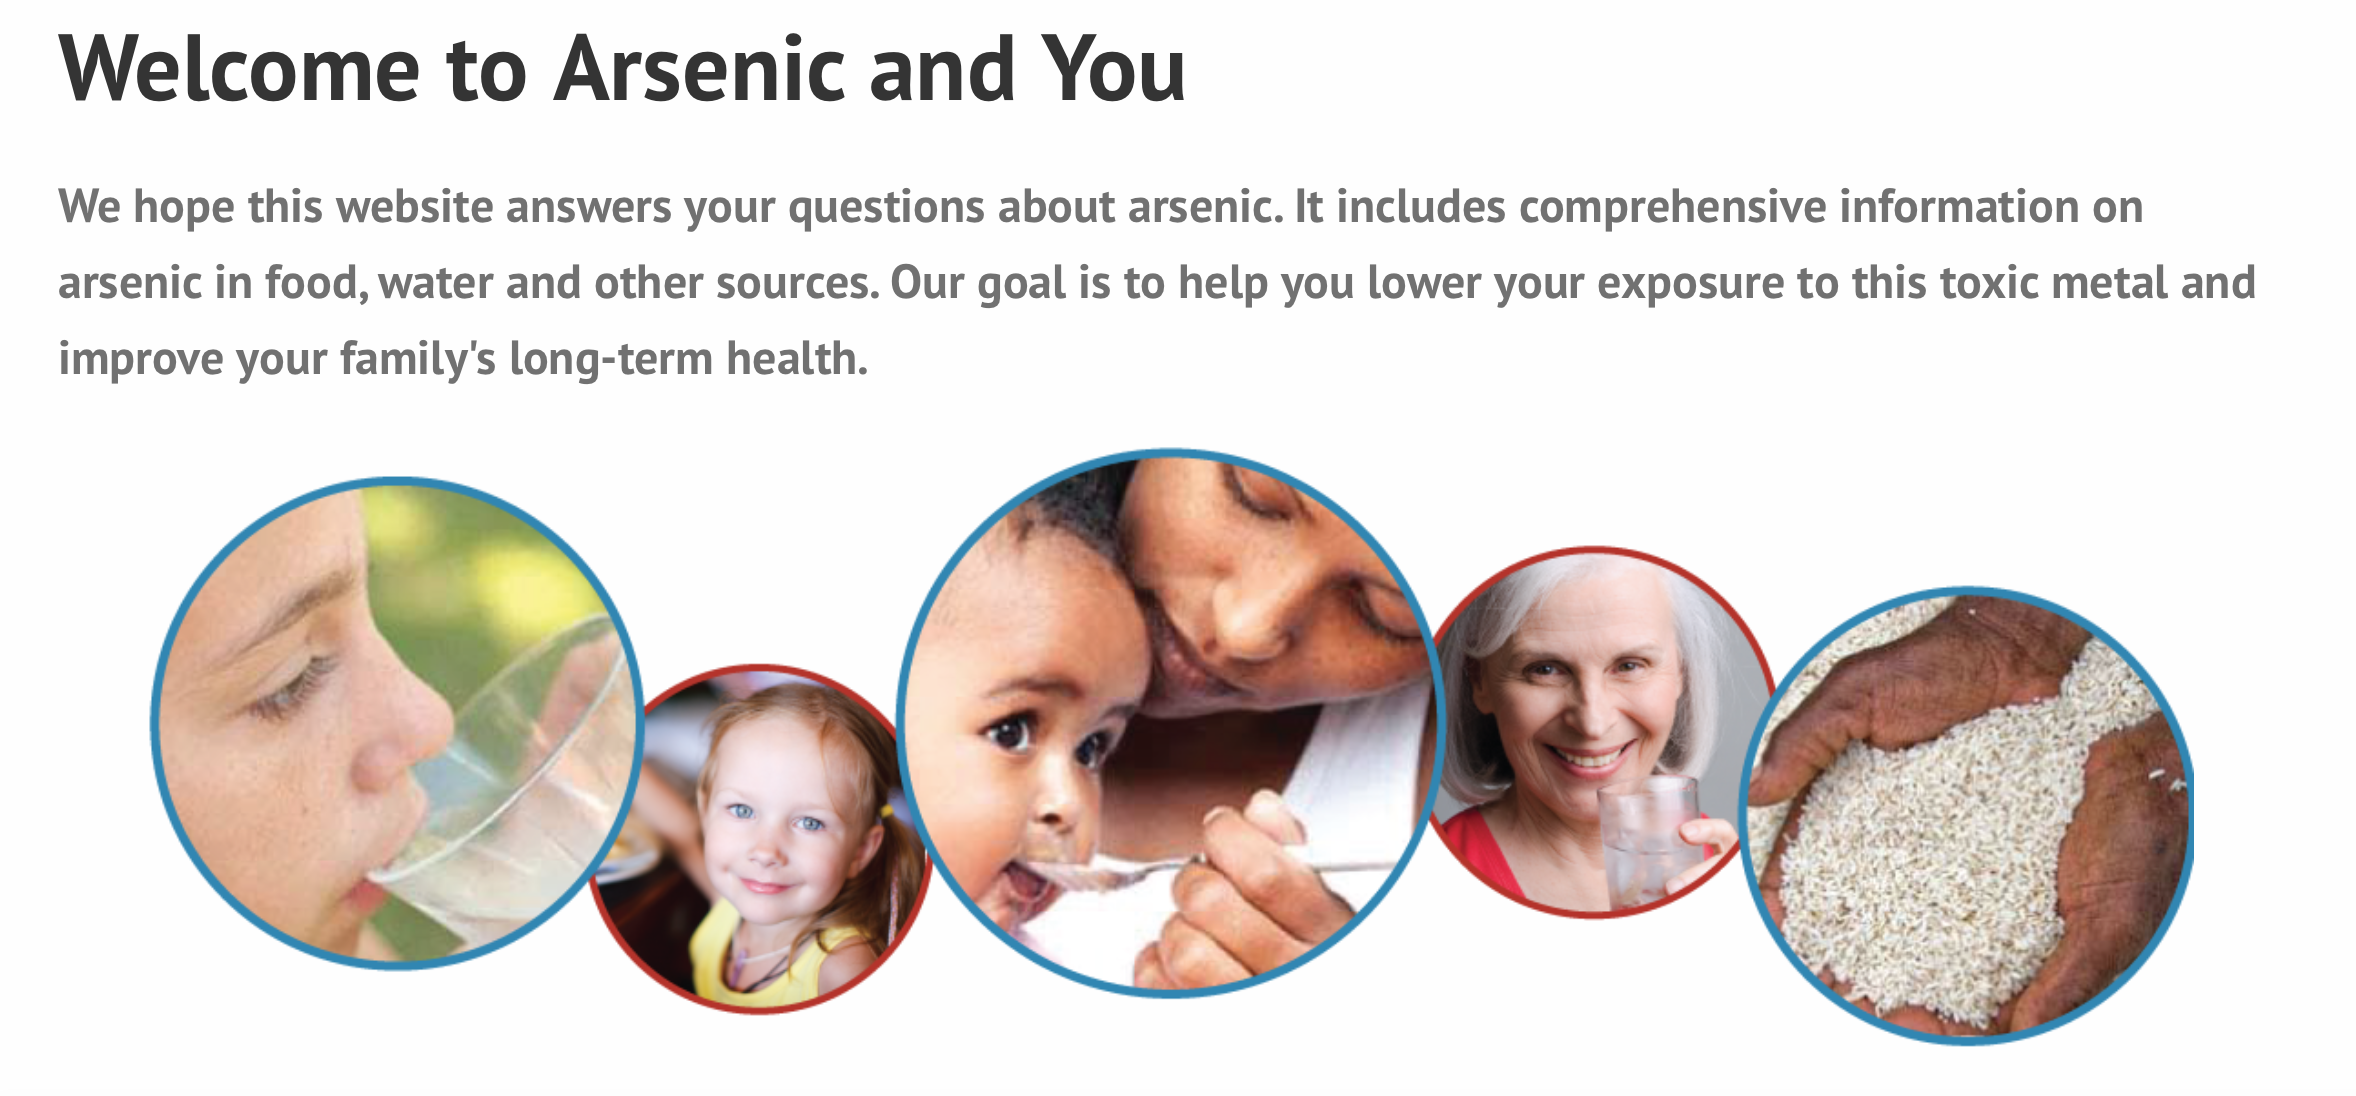 NH has the highest rate of bladder cancer in the nation - Learn more about how you can protect you and your family from arsenic in your drinking water from Dartmouth Toxic Metals Superfund Research group.